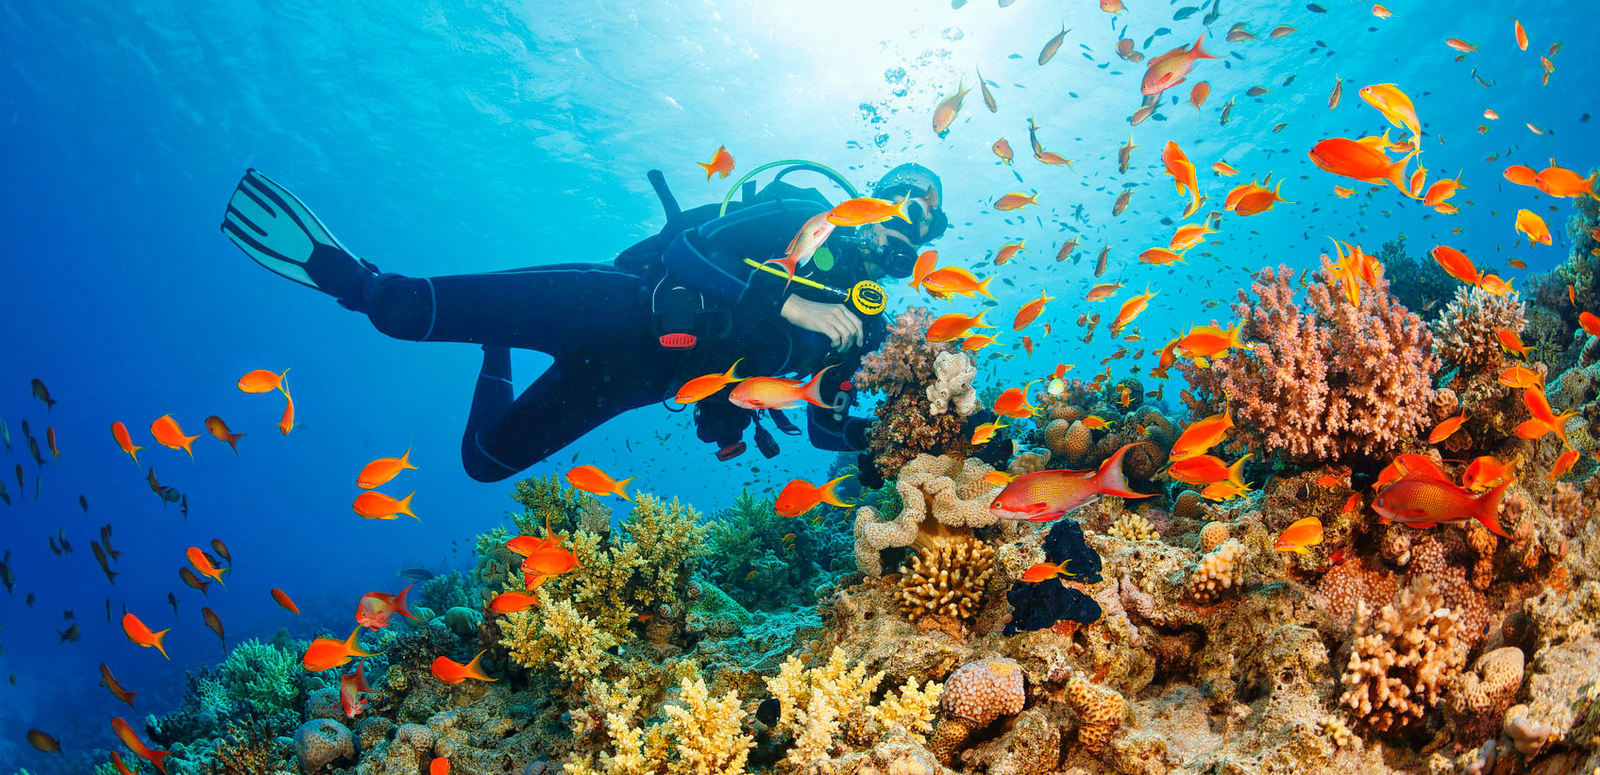 What to expect on your first scuba diving adventure?